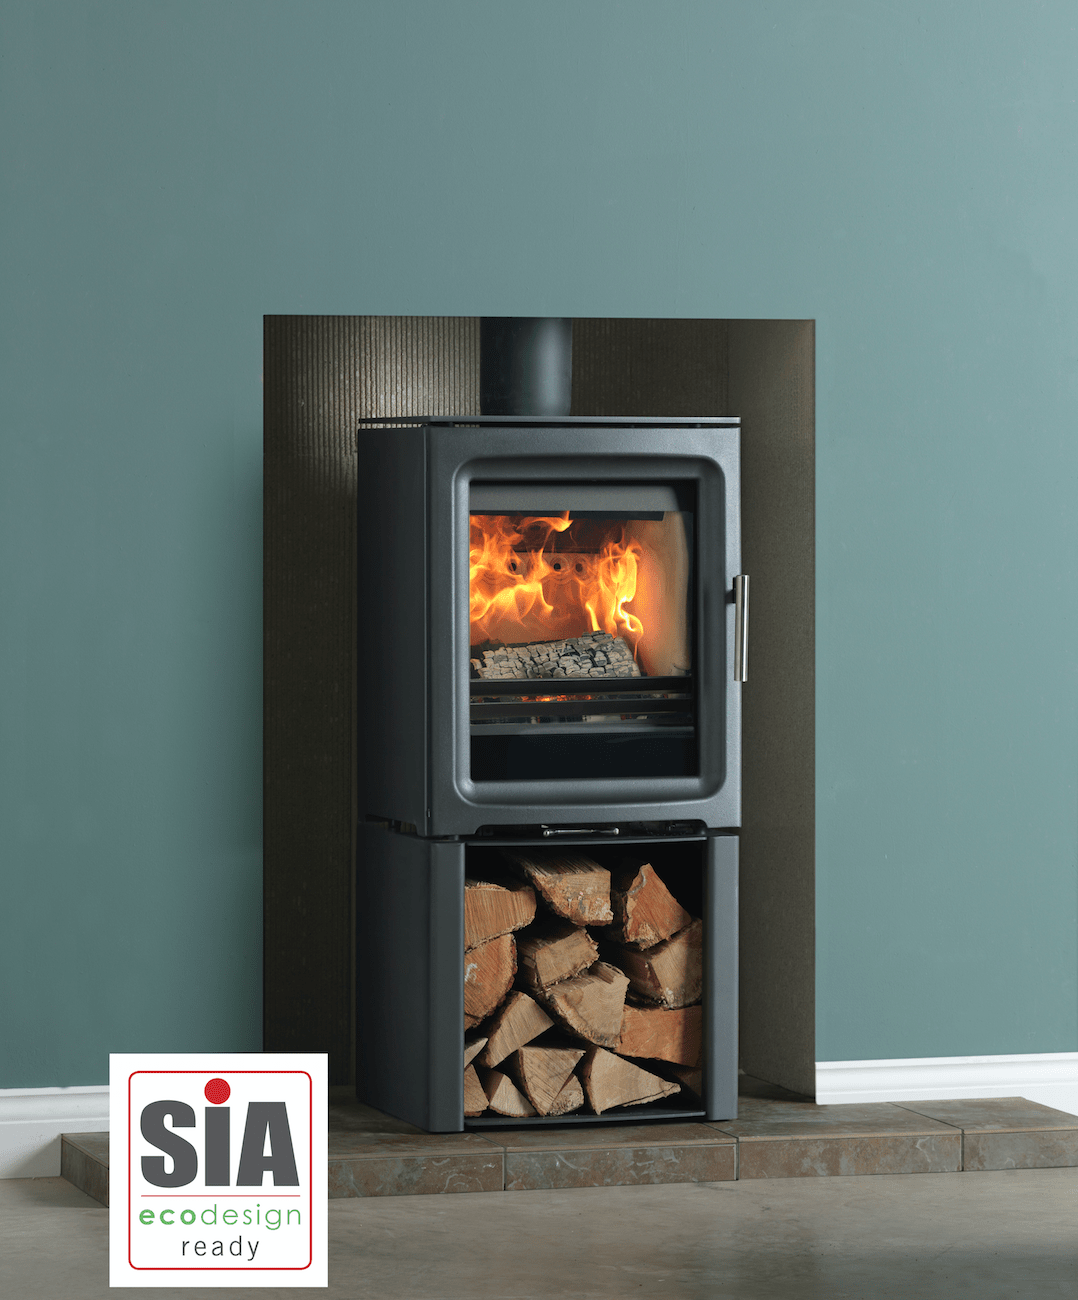 SIA Ecodesign Stoves Reduce Emissions – It's Official